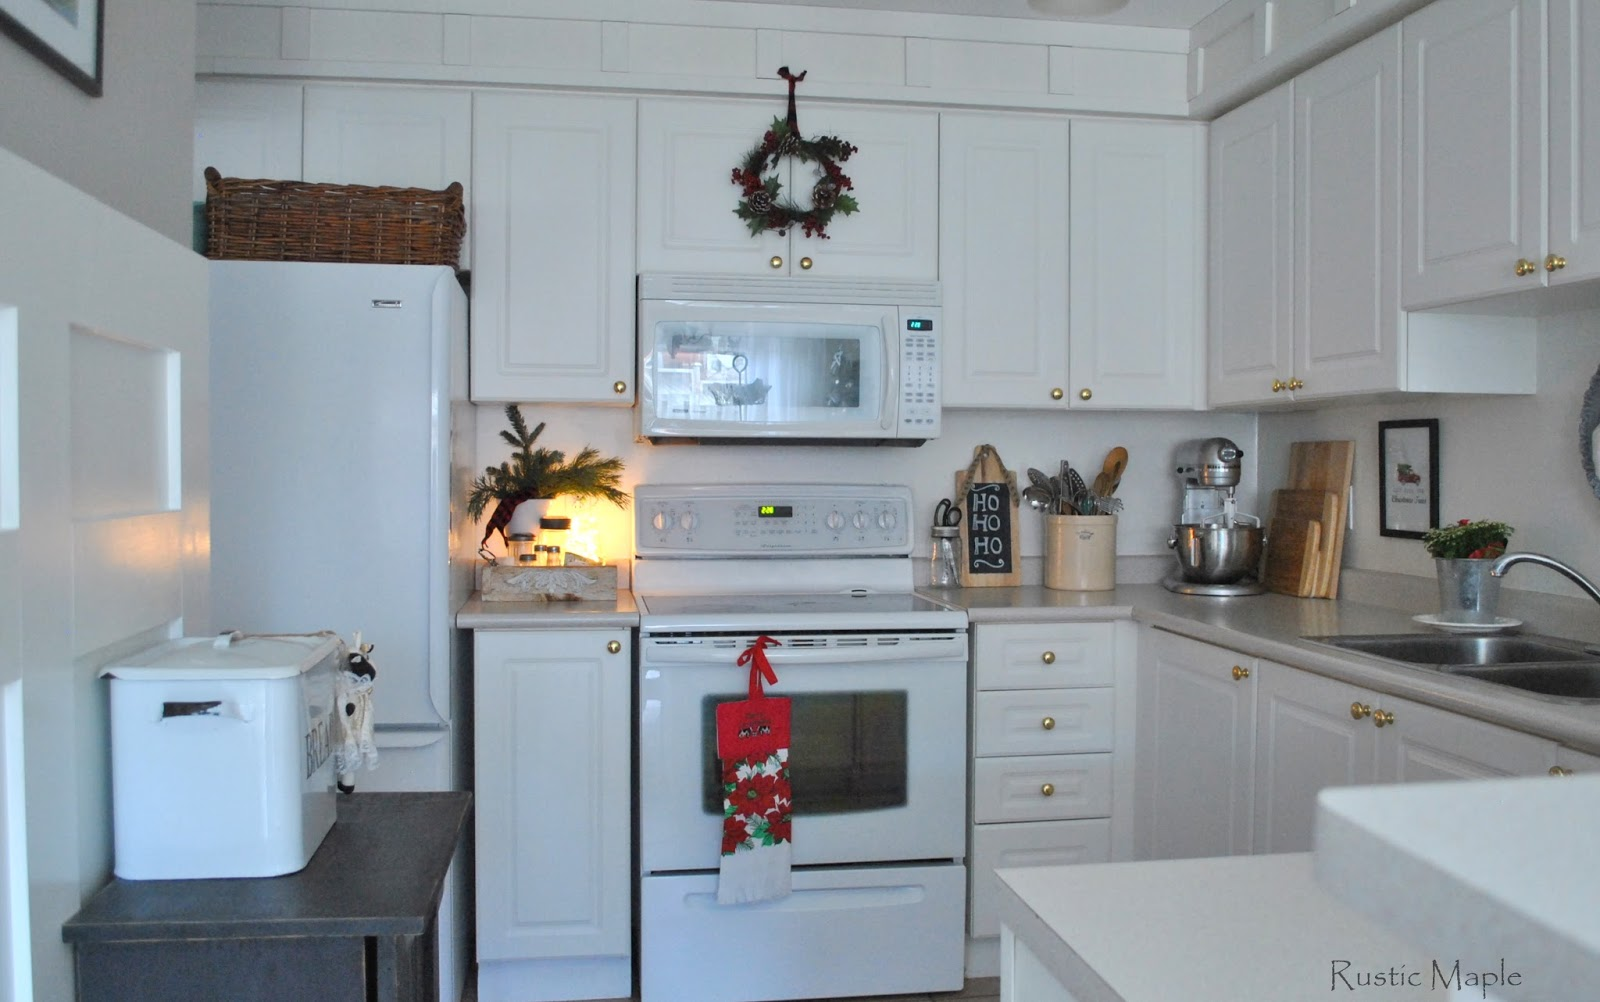 Rustic Maple: Our Rustic Christmas Kitchen 2015